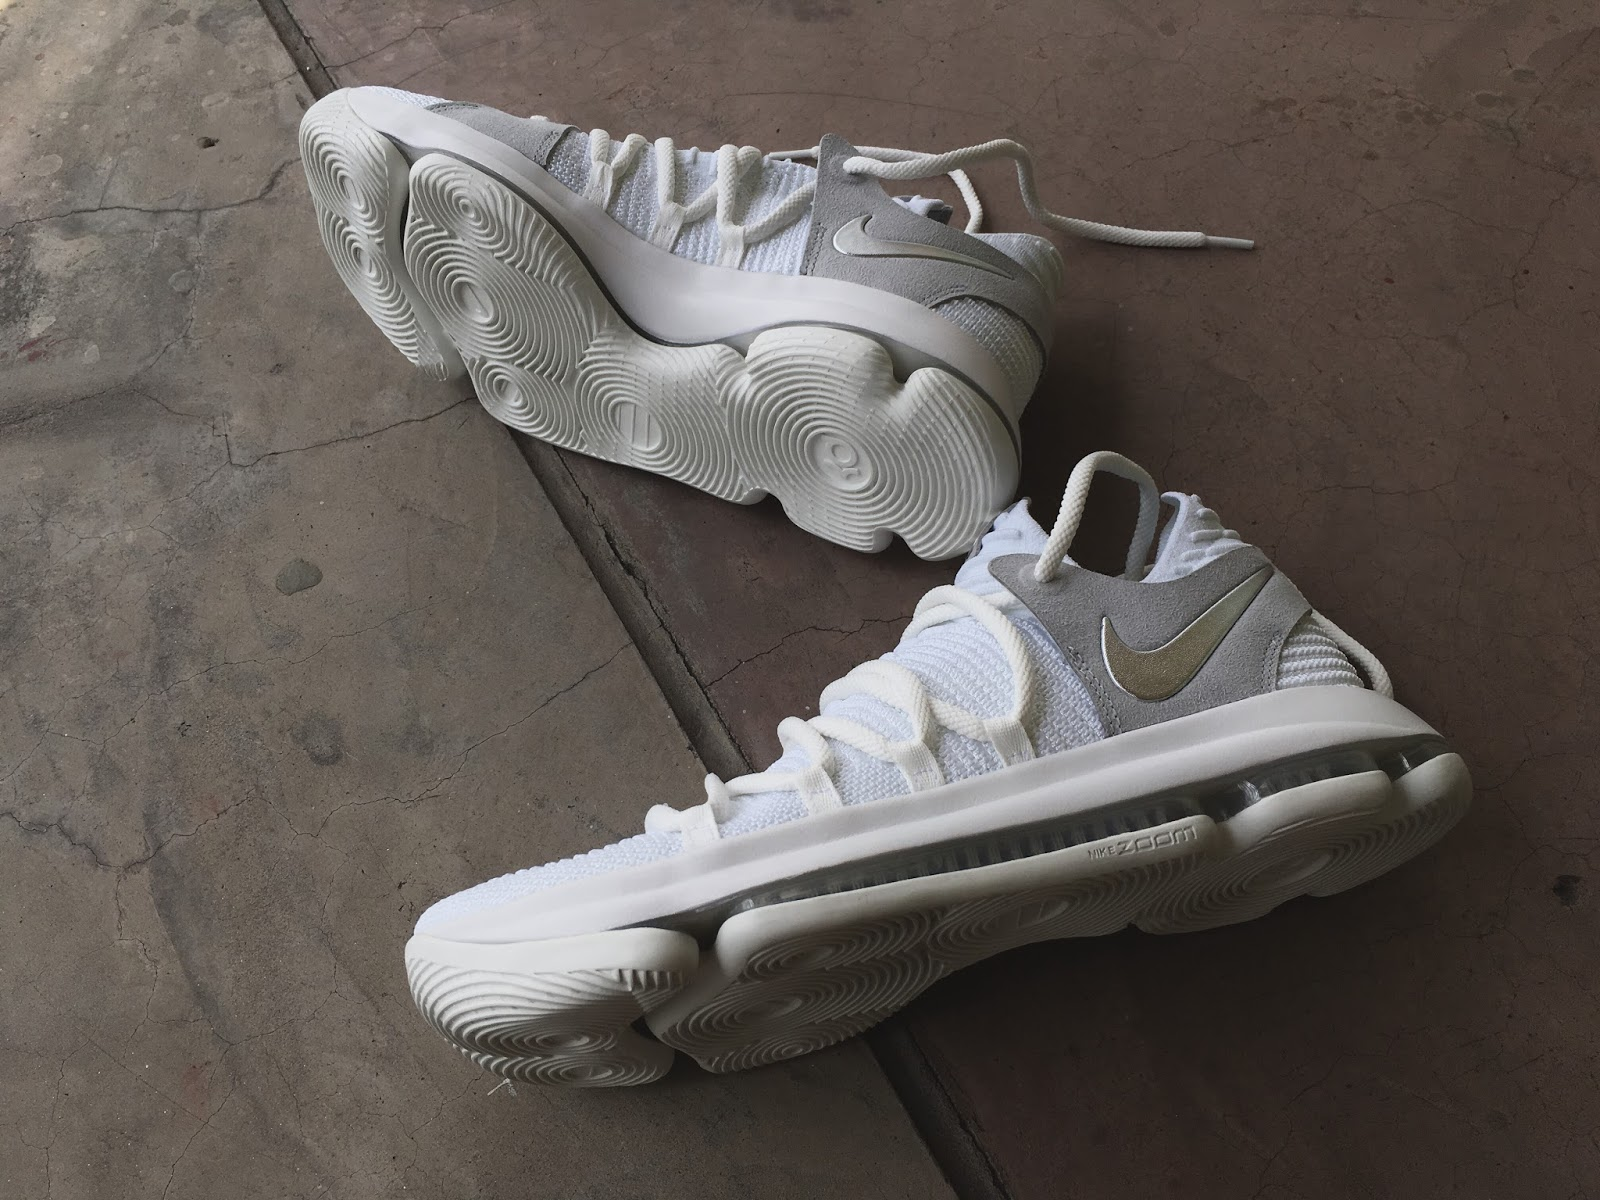 71180a0e0ab3 Nike KD 10 Performance Review